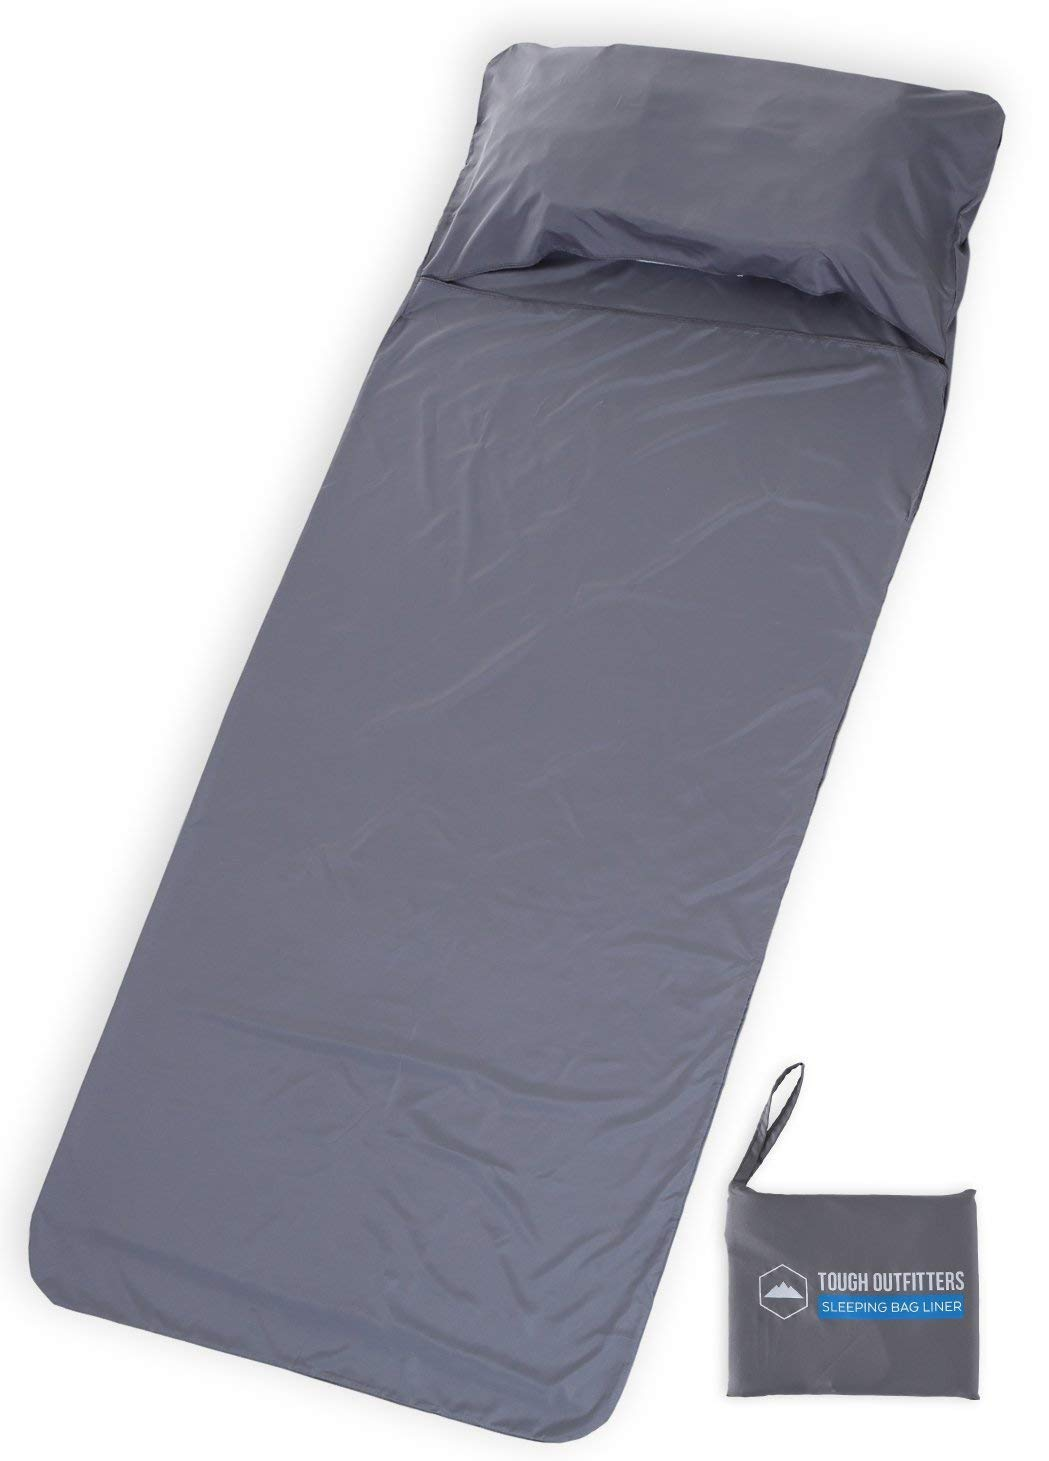 Tough Outdoors Sleeping Bag Liner - 85'' x 37'' Ultralight Camping Sheet - Lightweight Sleeping Sack - Ideal for Traveling, Hotels, Hostels & Backpacking